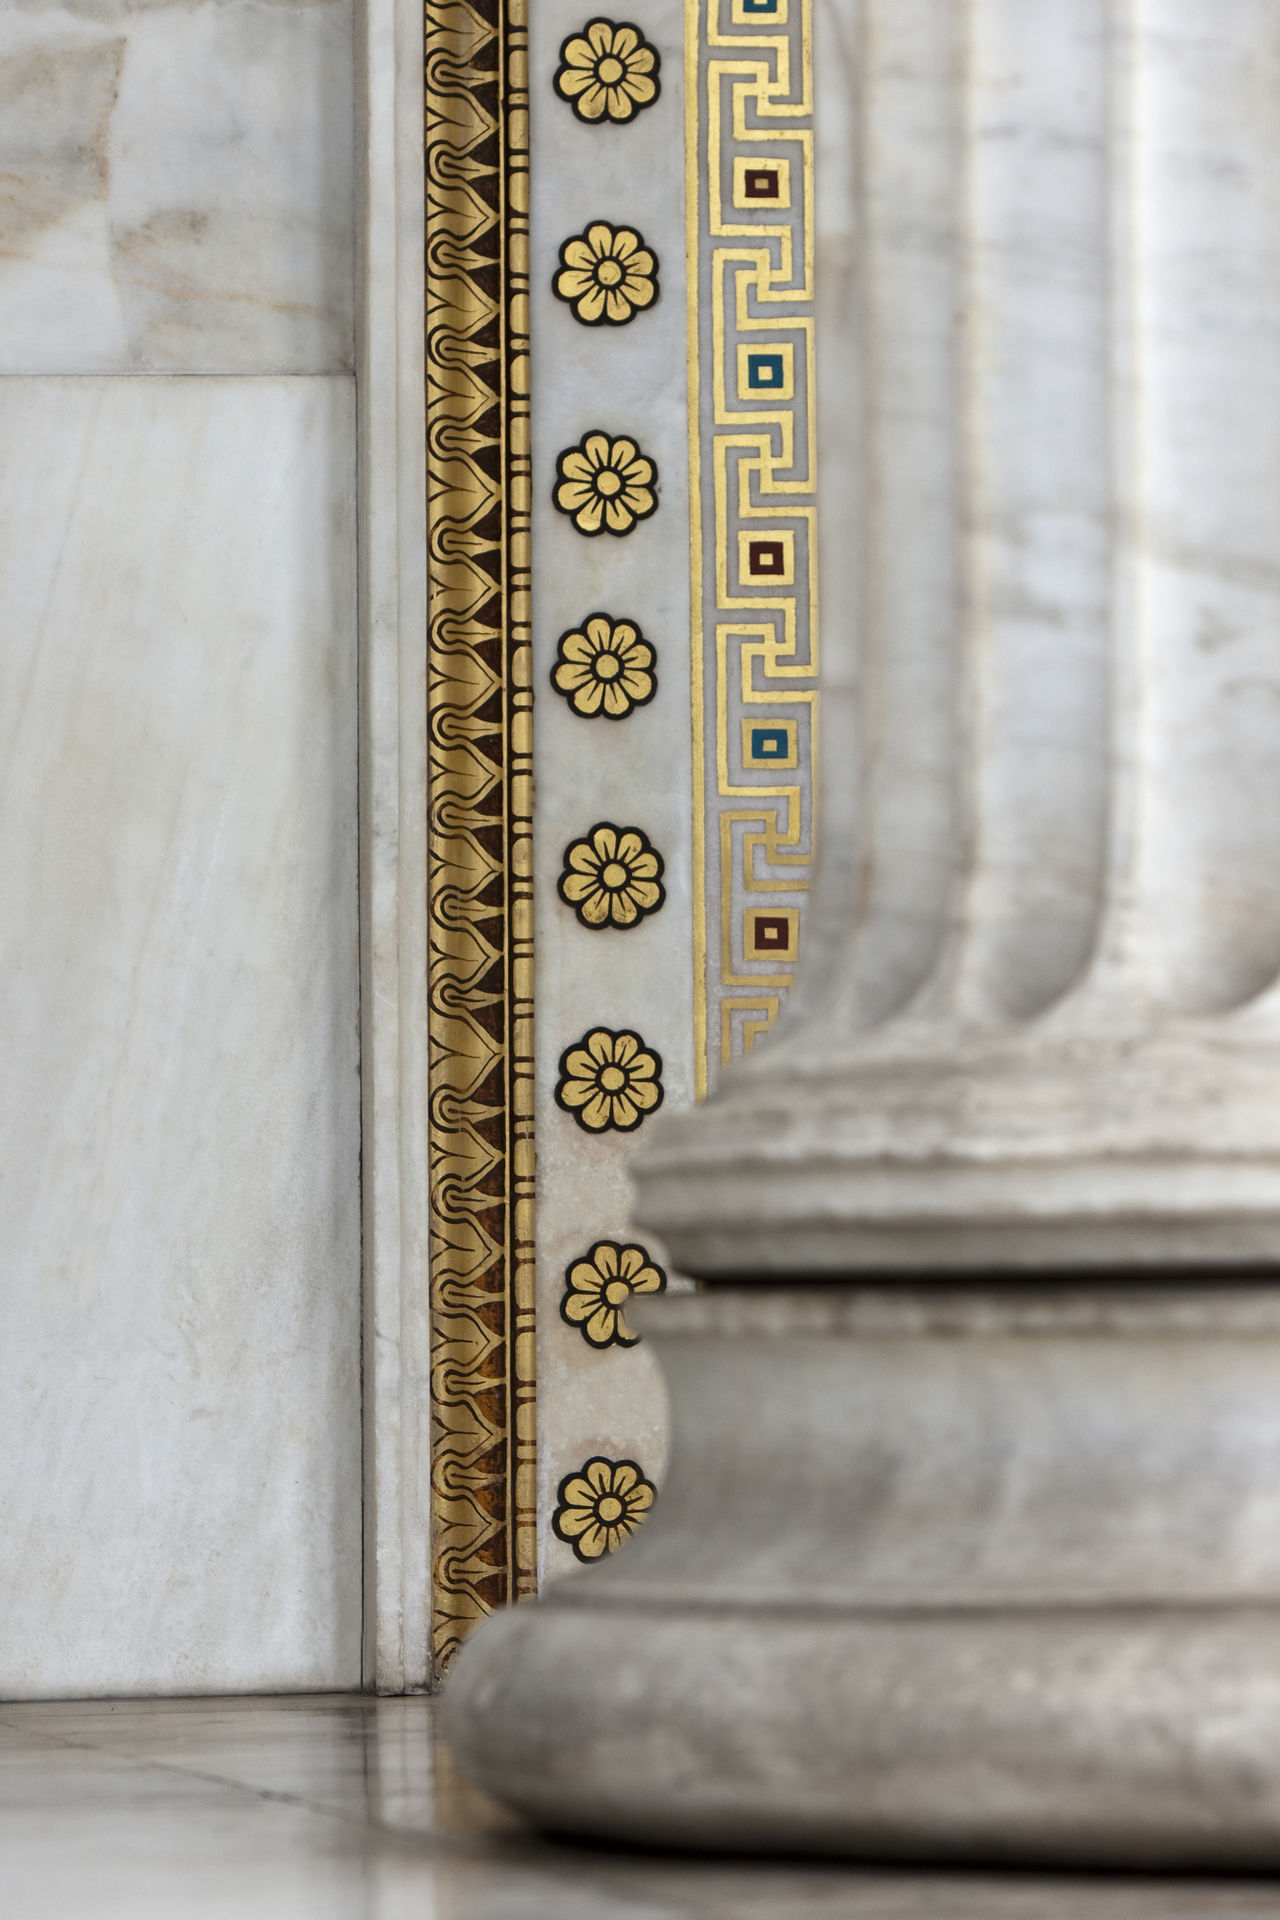 Academy Of Athens Architecture Art Art And Craft Athens Base Column Creativity Design Full Frame Golden Hour Greece Green Ionic Order Neoclassical Neoclassical Architecture NeoClassicism Old-fashioned Ornate Pattern Theophil Hansen Wall